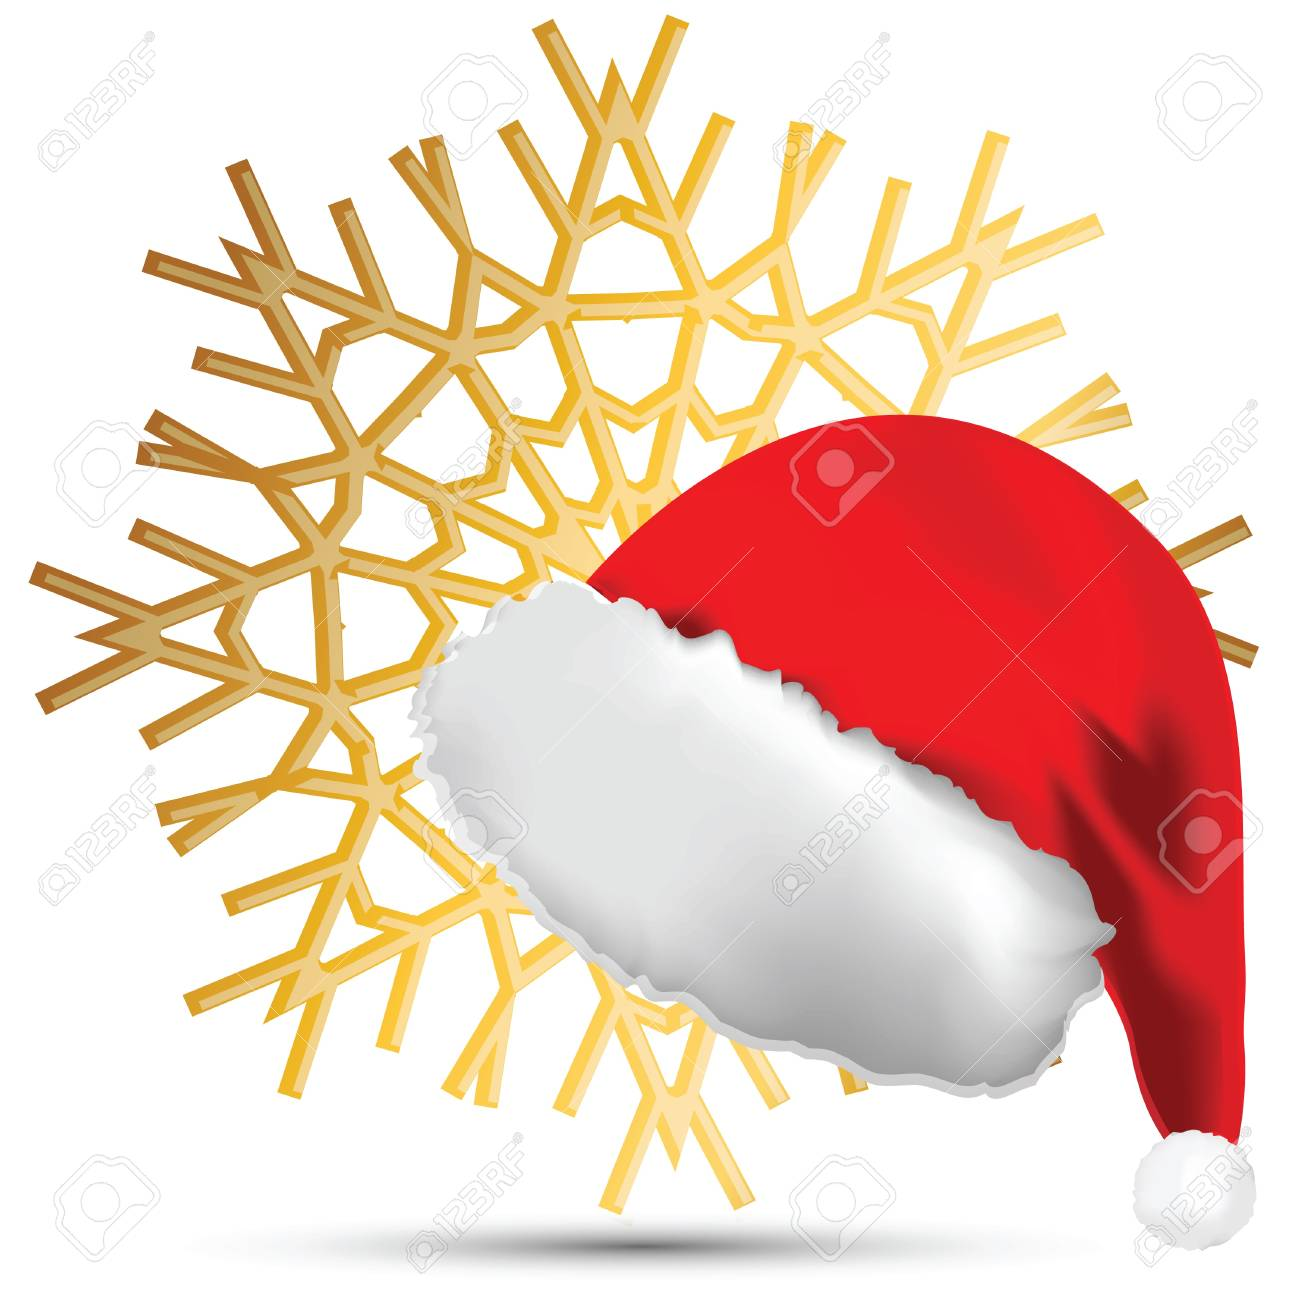 The Snowflake and a cap of Santa Claus on a white background Stock Vector - 10563592